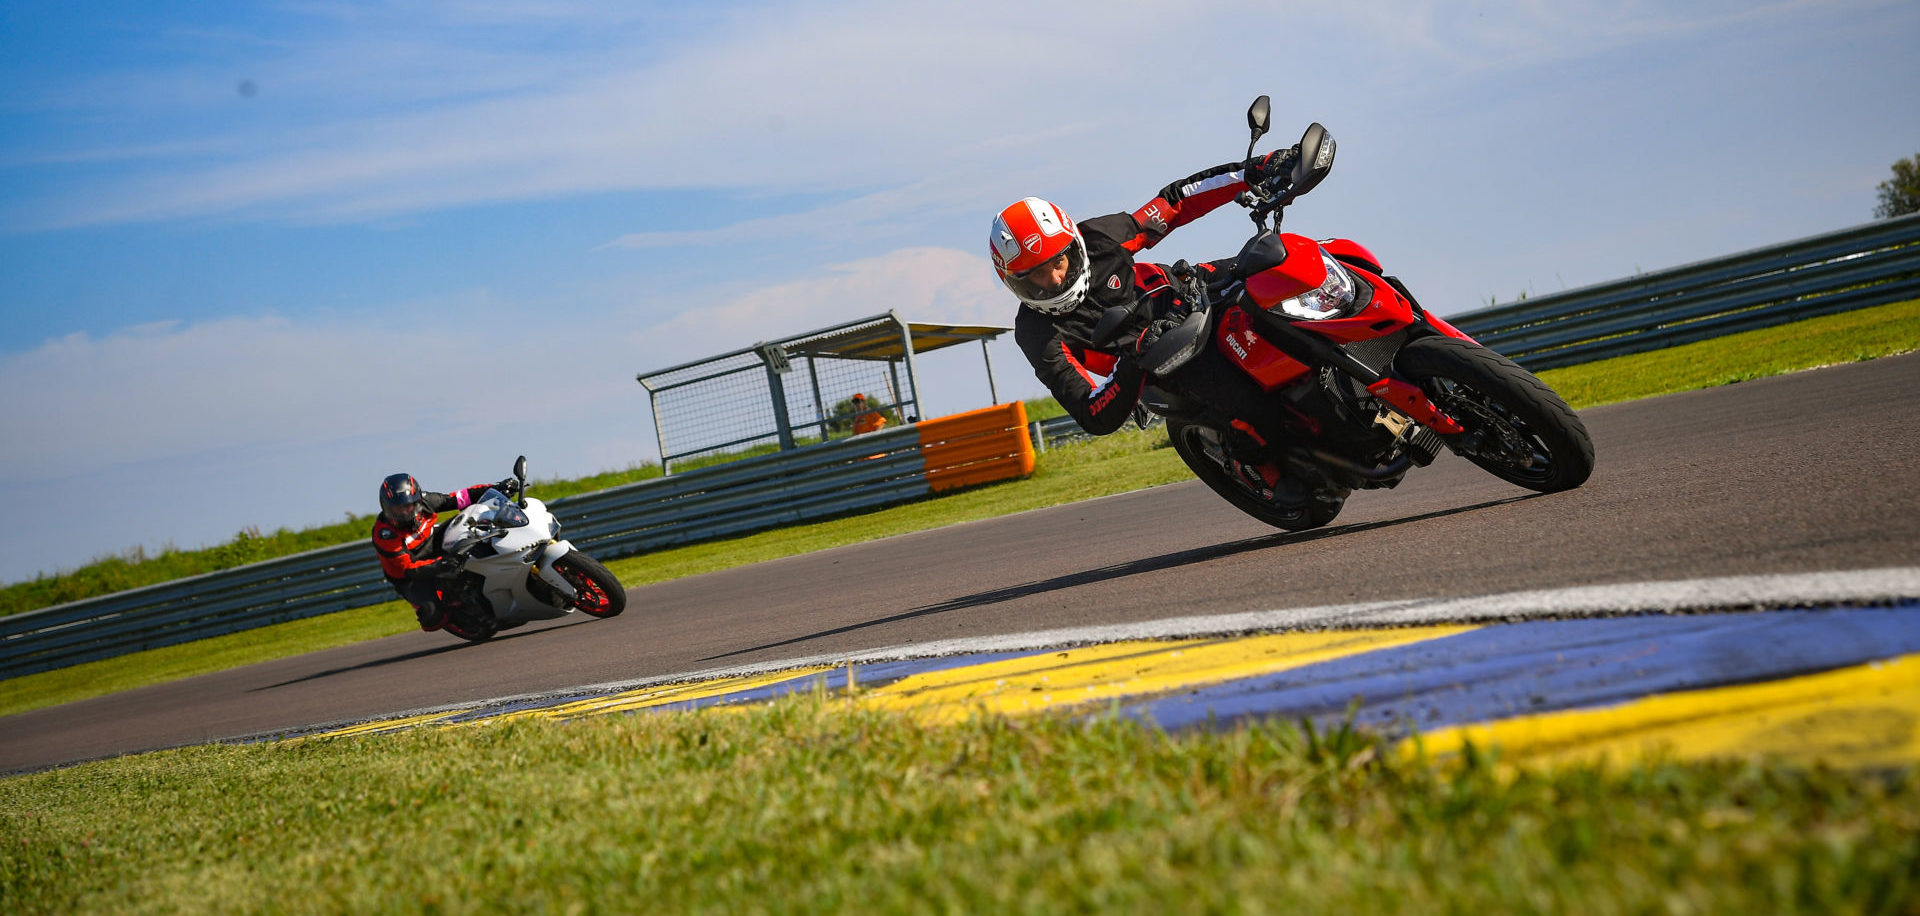 Action from a DRE Road event. Photo courtesy of Ducati.